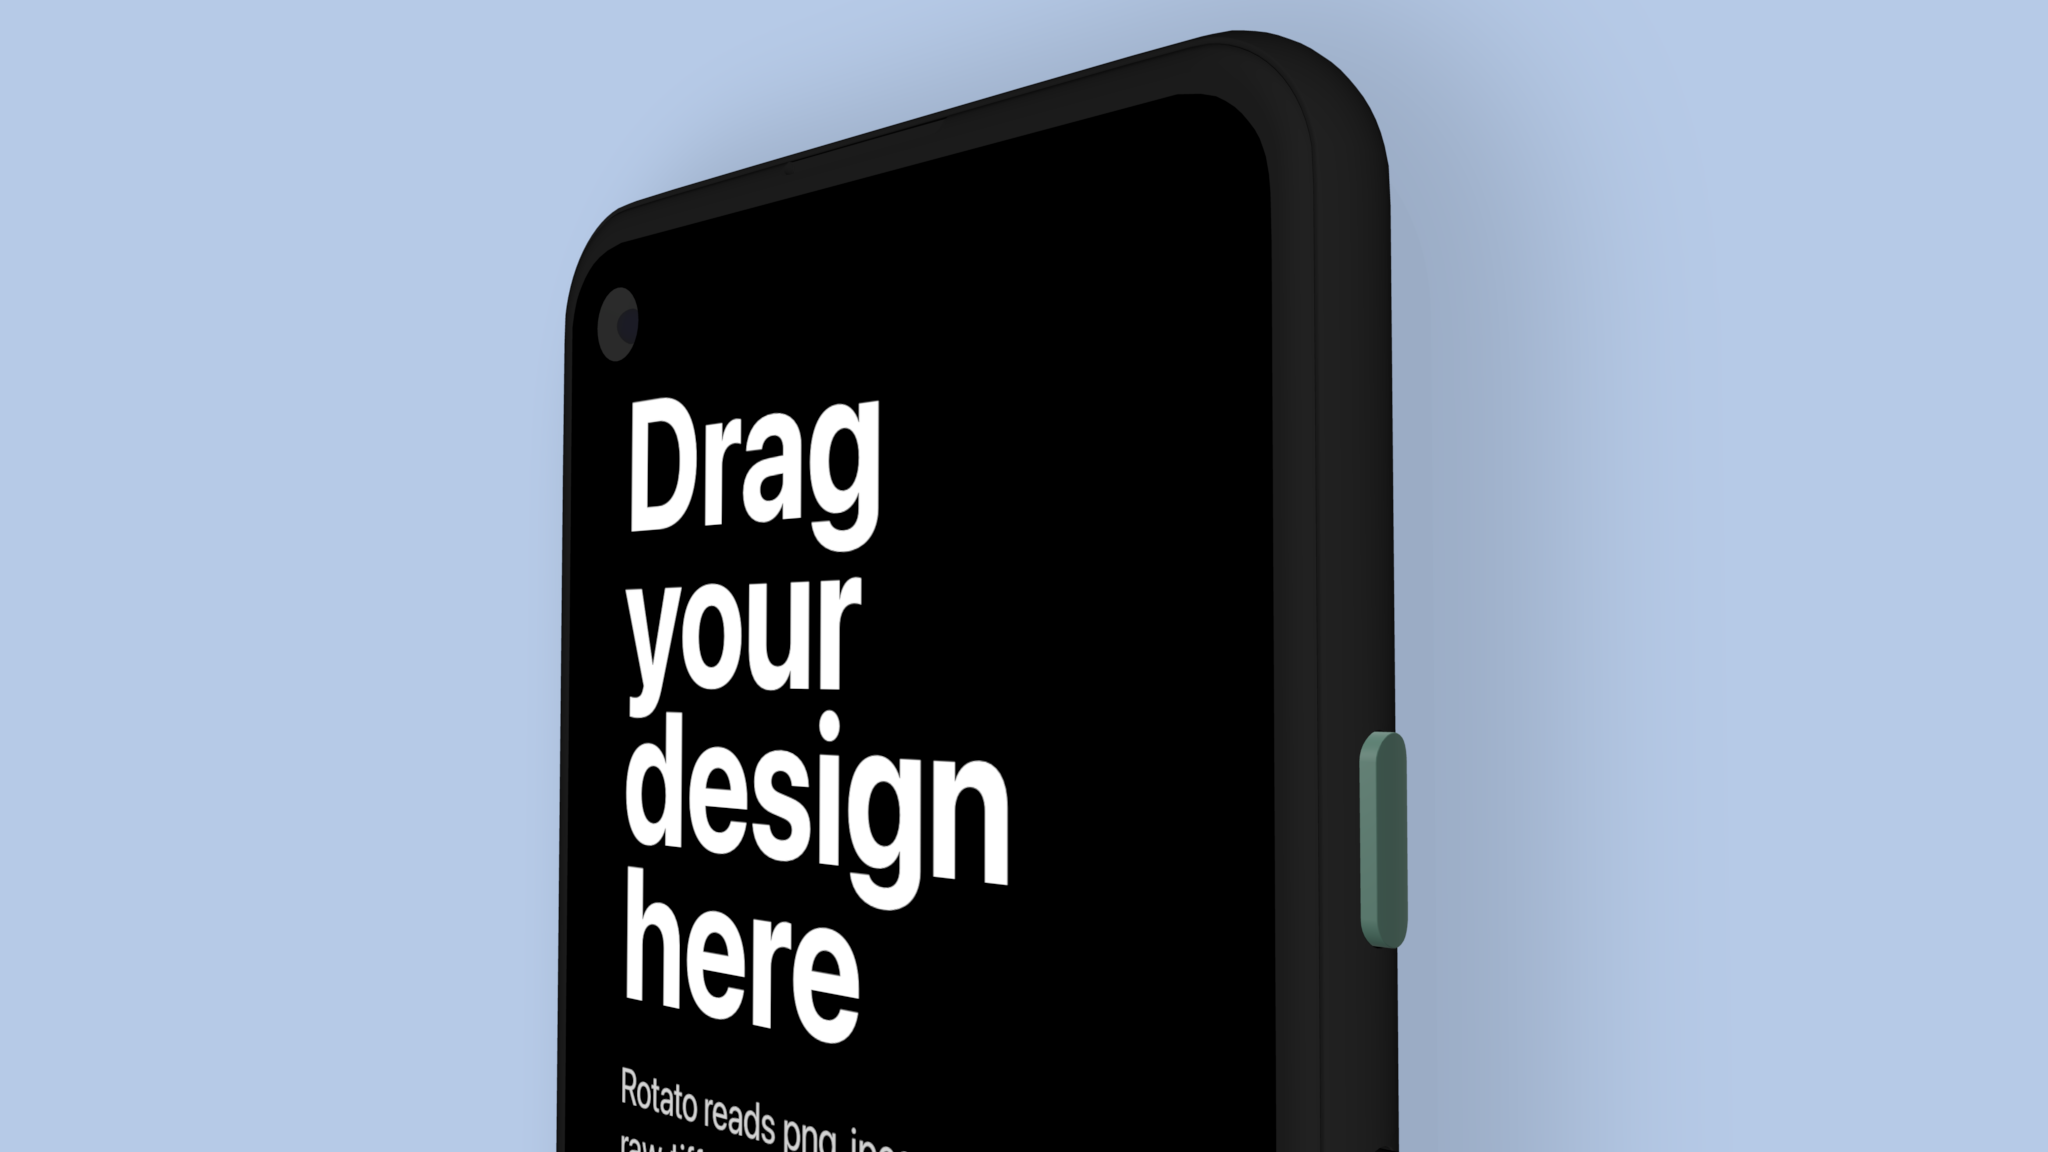 Google Pixel 4a mockup showing top part of screen